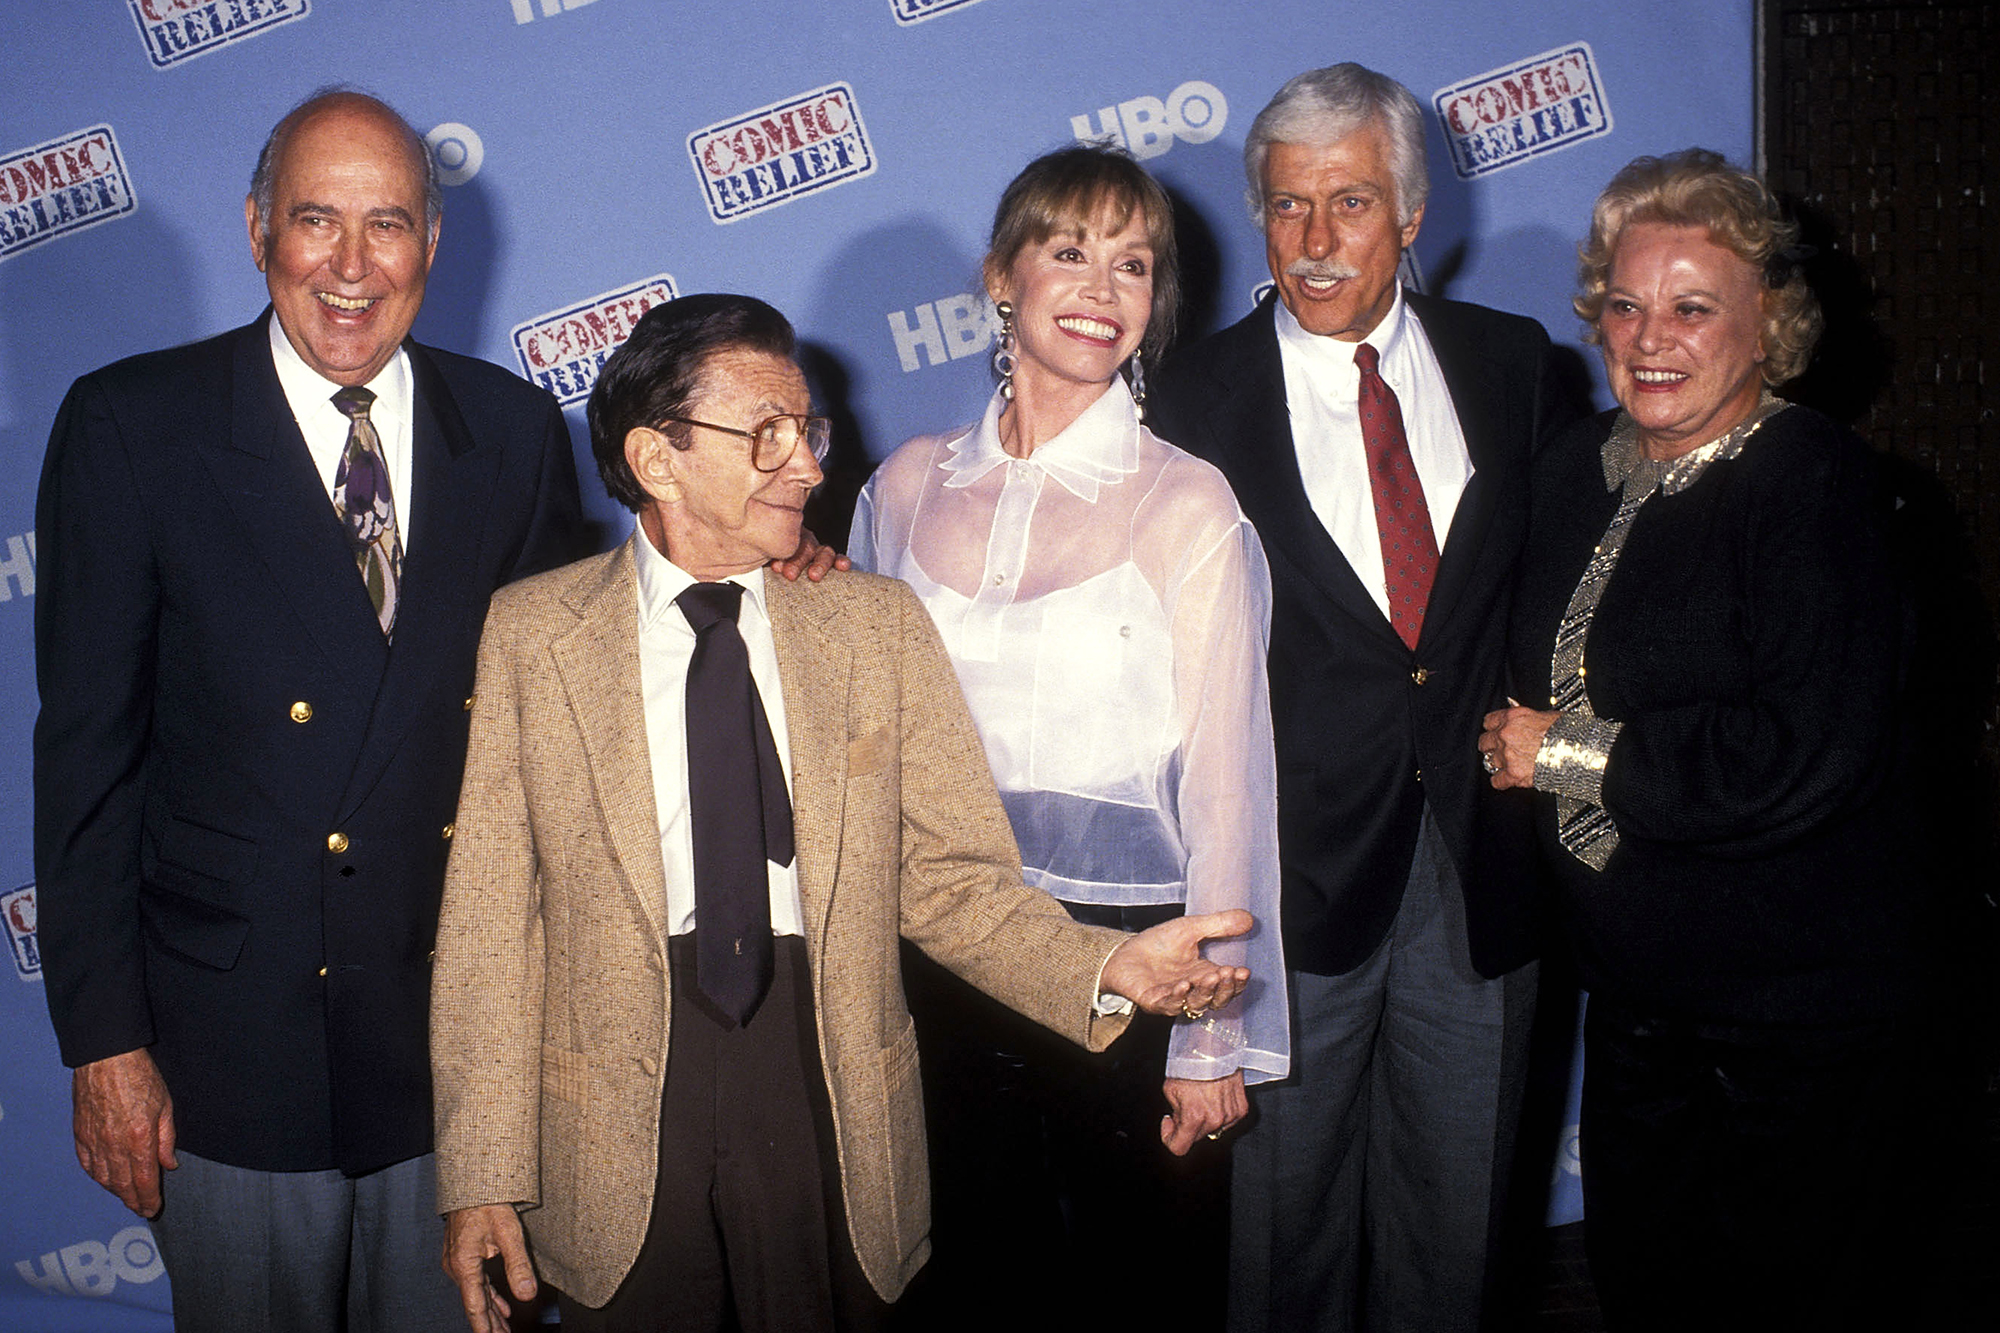 From left: Carl Reiner, Morey Amsterdam, Mary Tyler Moore, Dick Van Dyke and Rose Marie, on May 16, 1992  in Universal City, Calif.